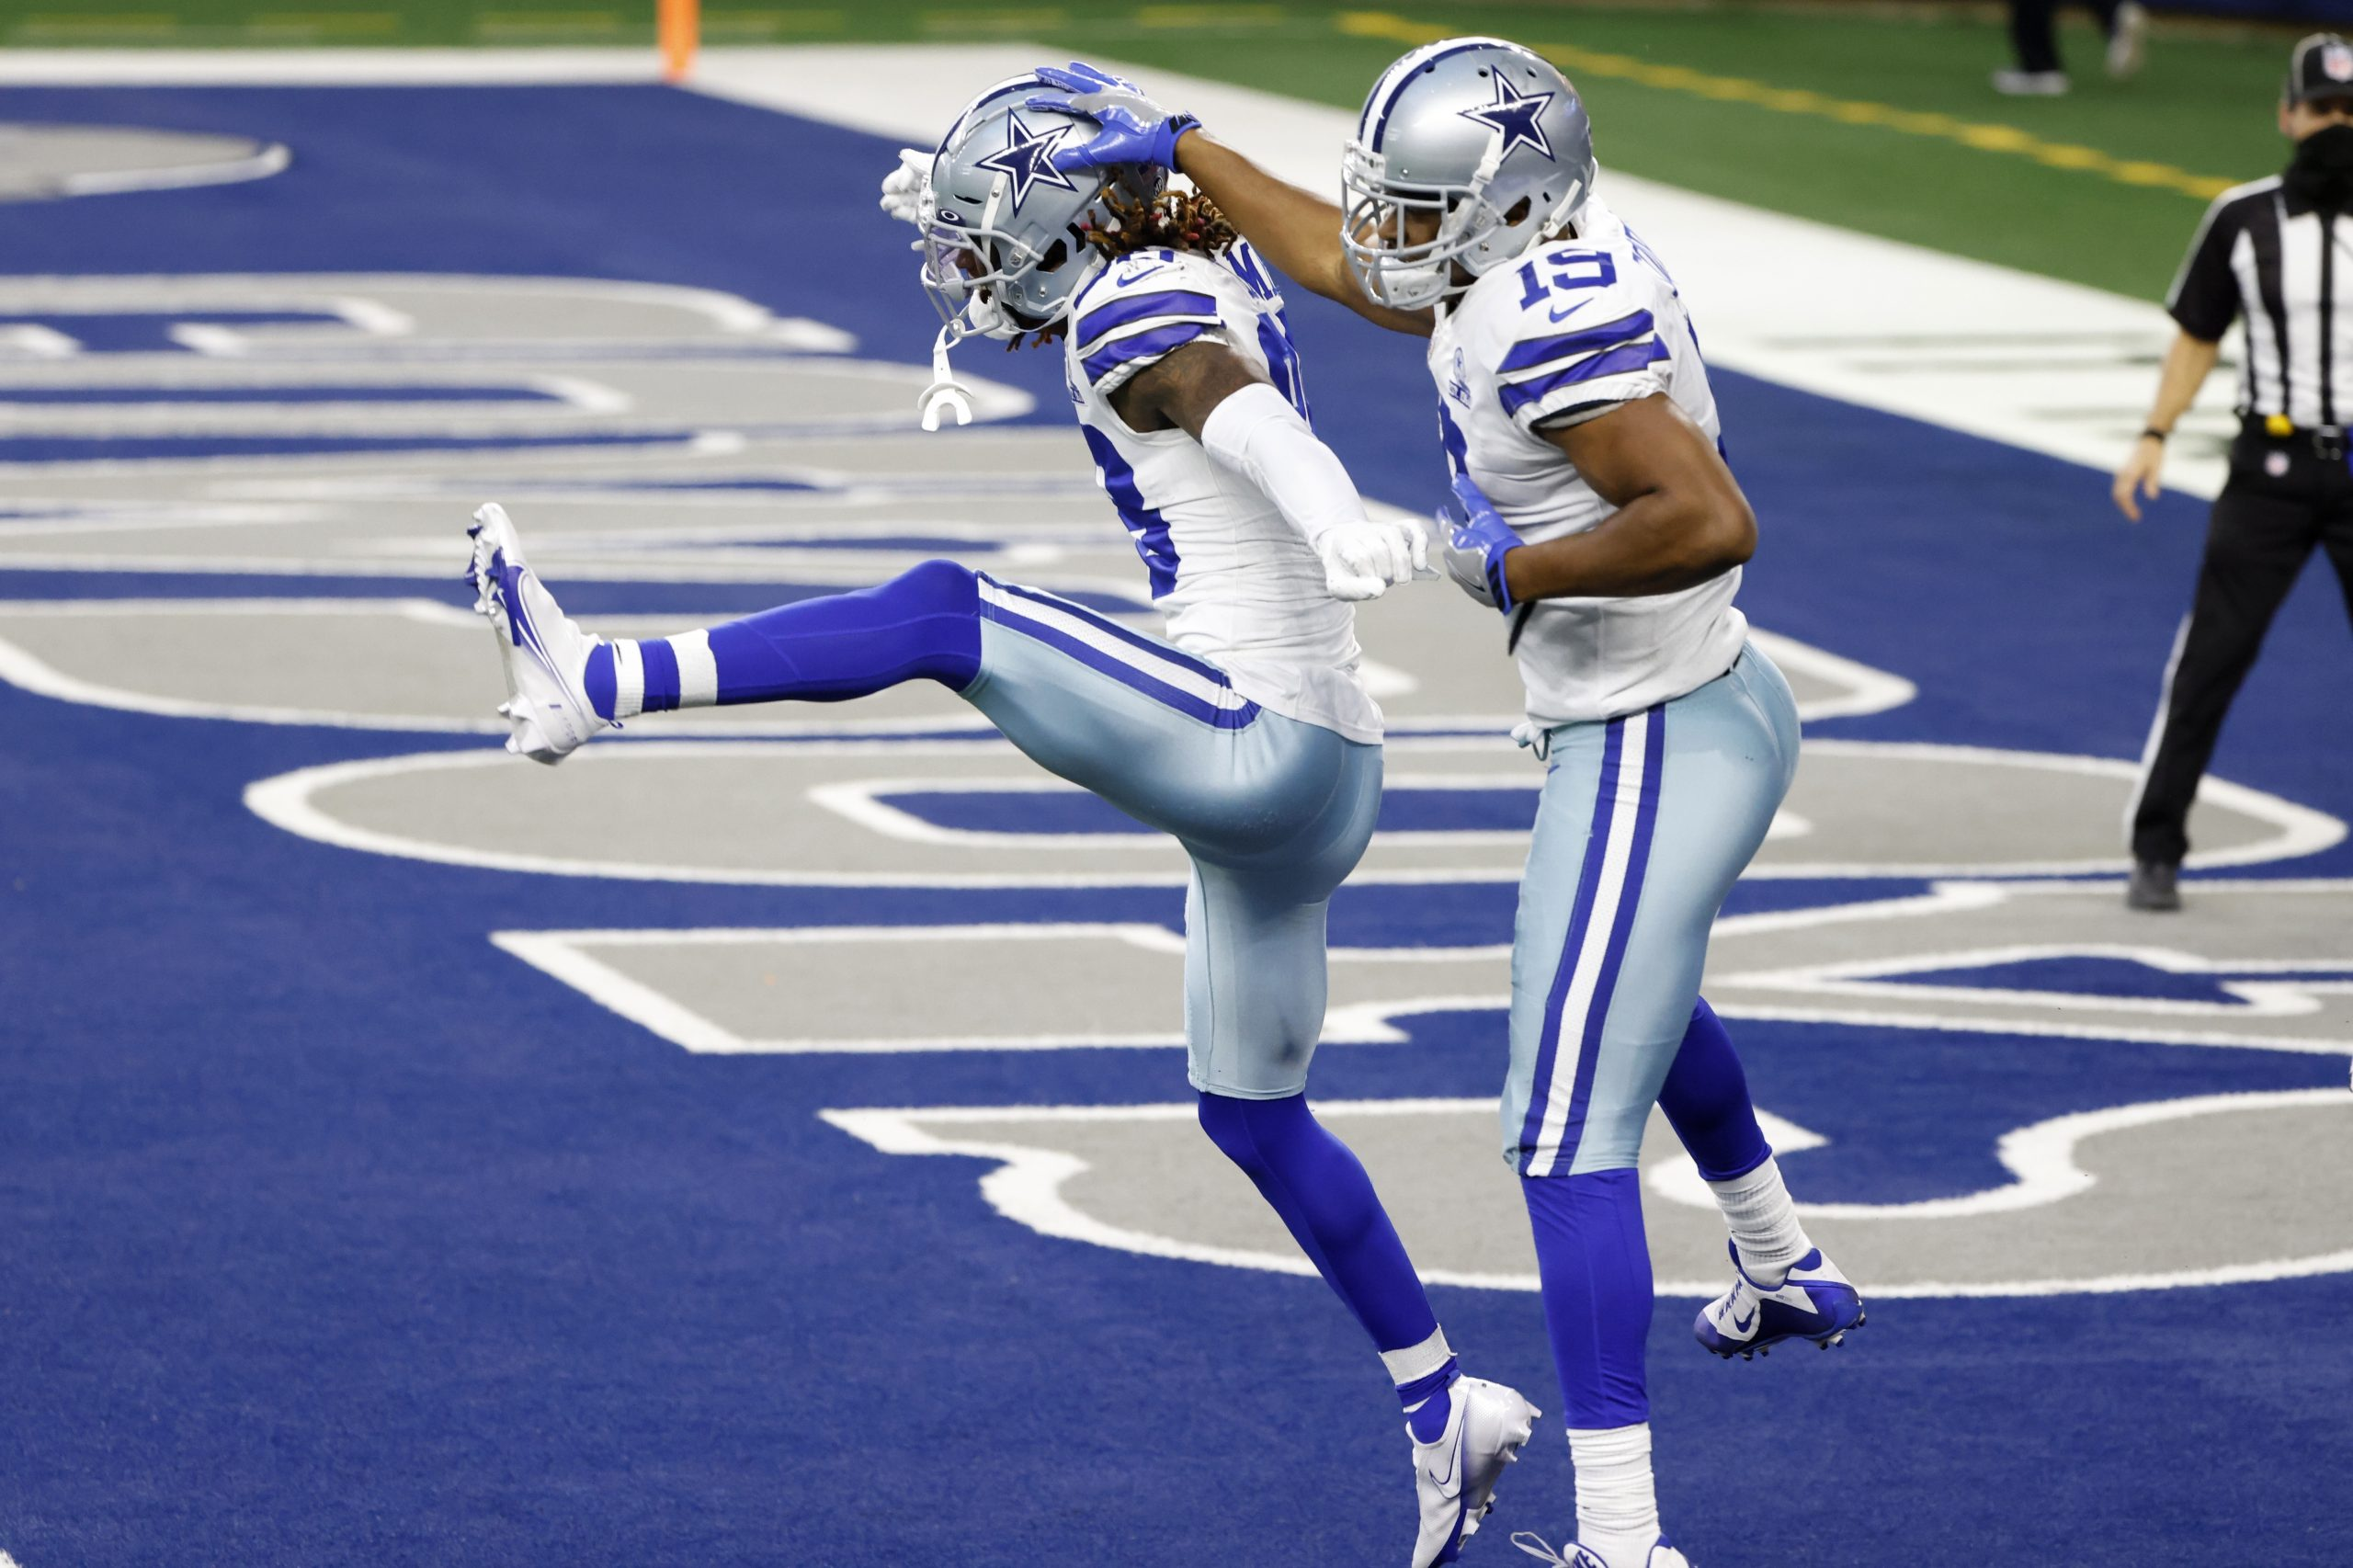 Cowboys defeat Eagles 37-17 to stay alive in NFC East playoff race 6